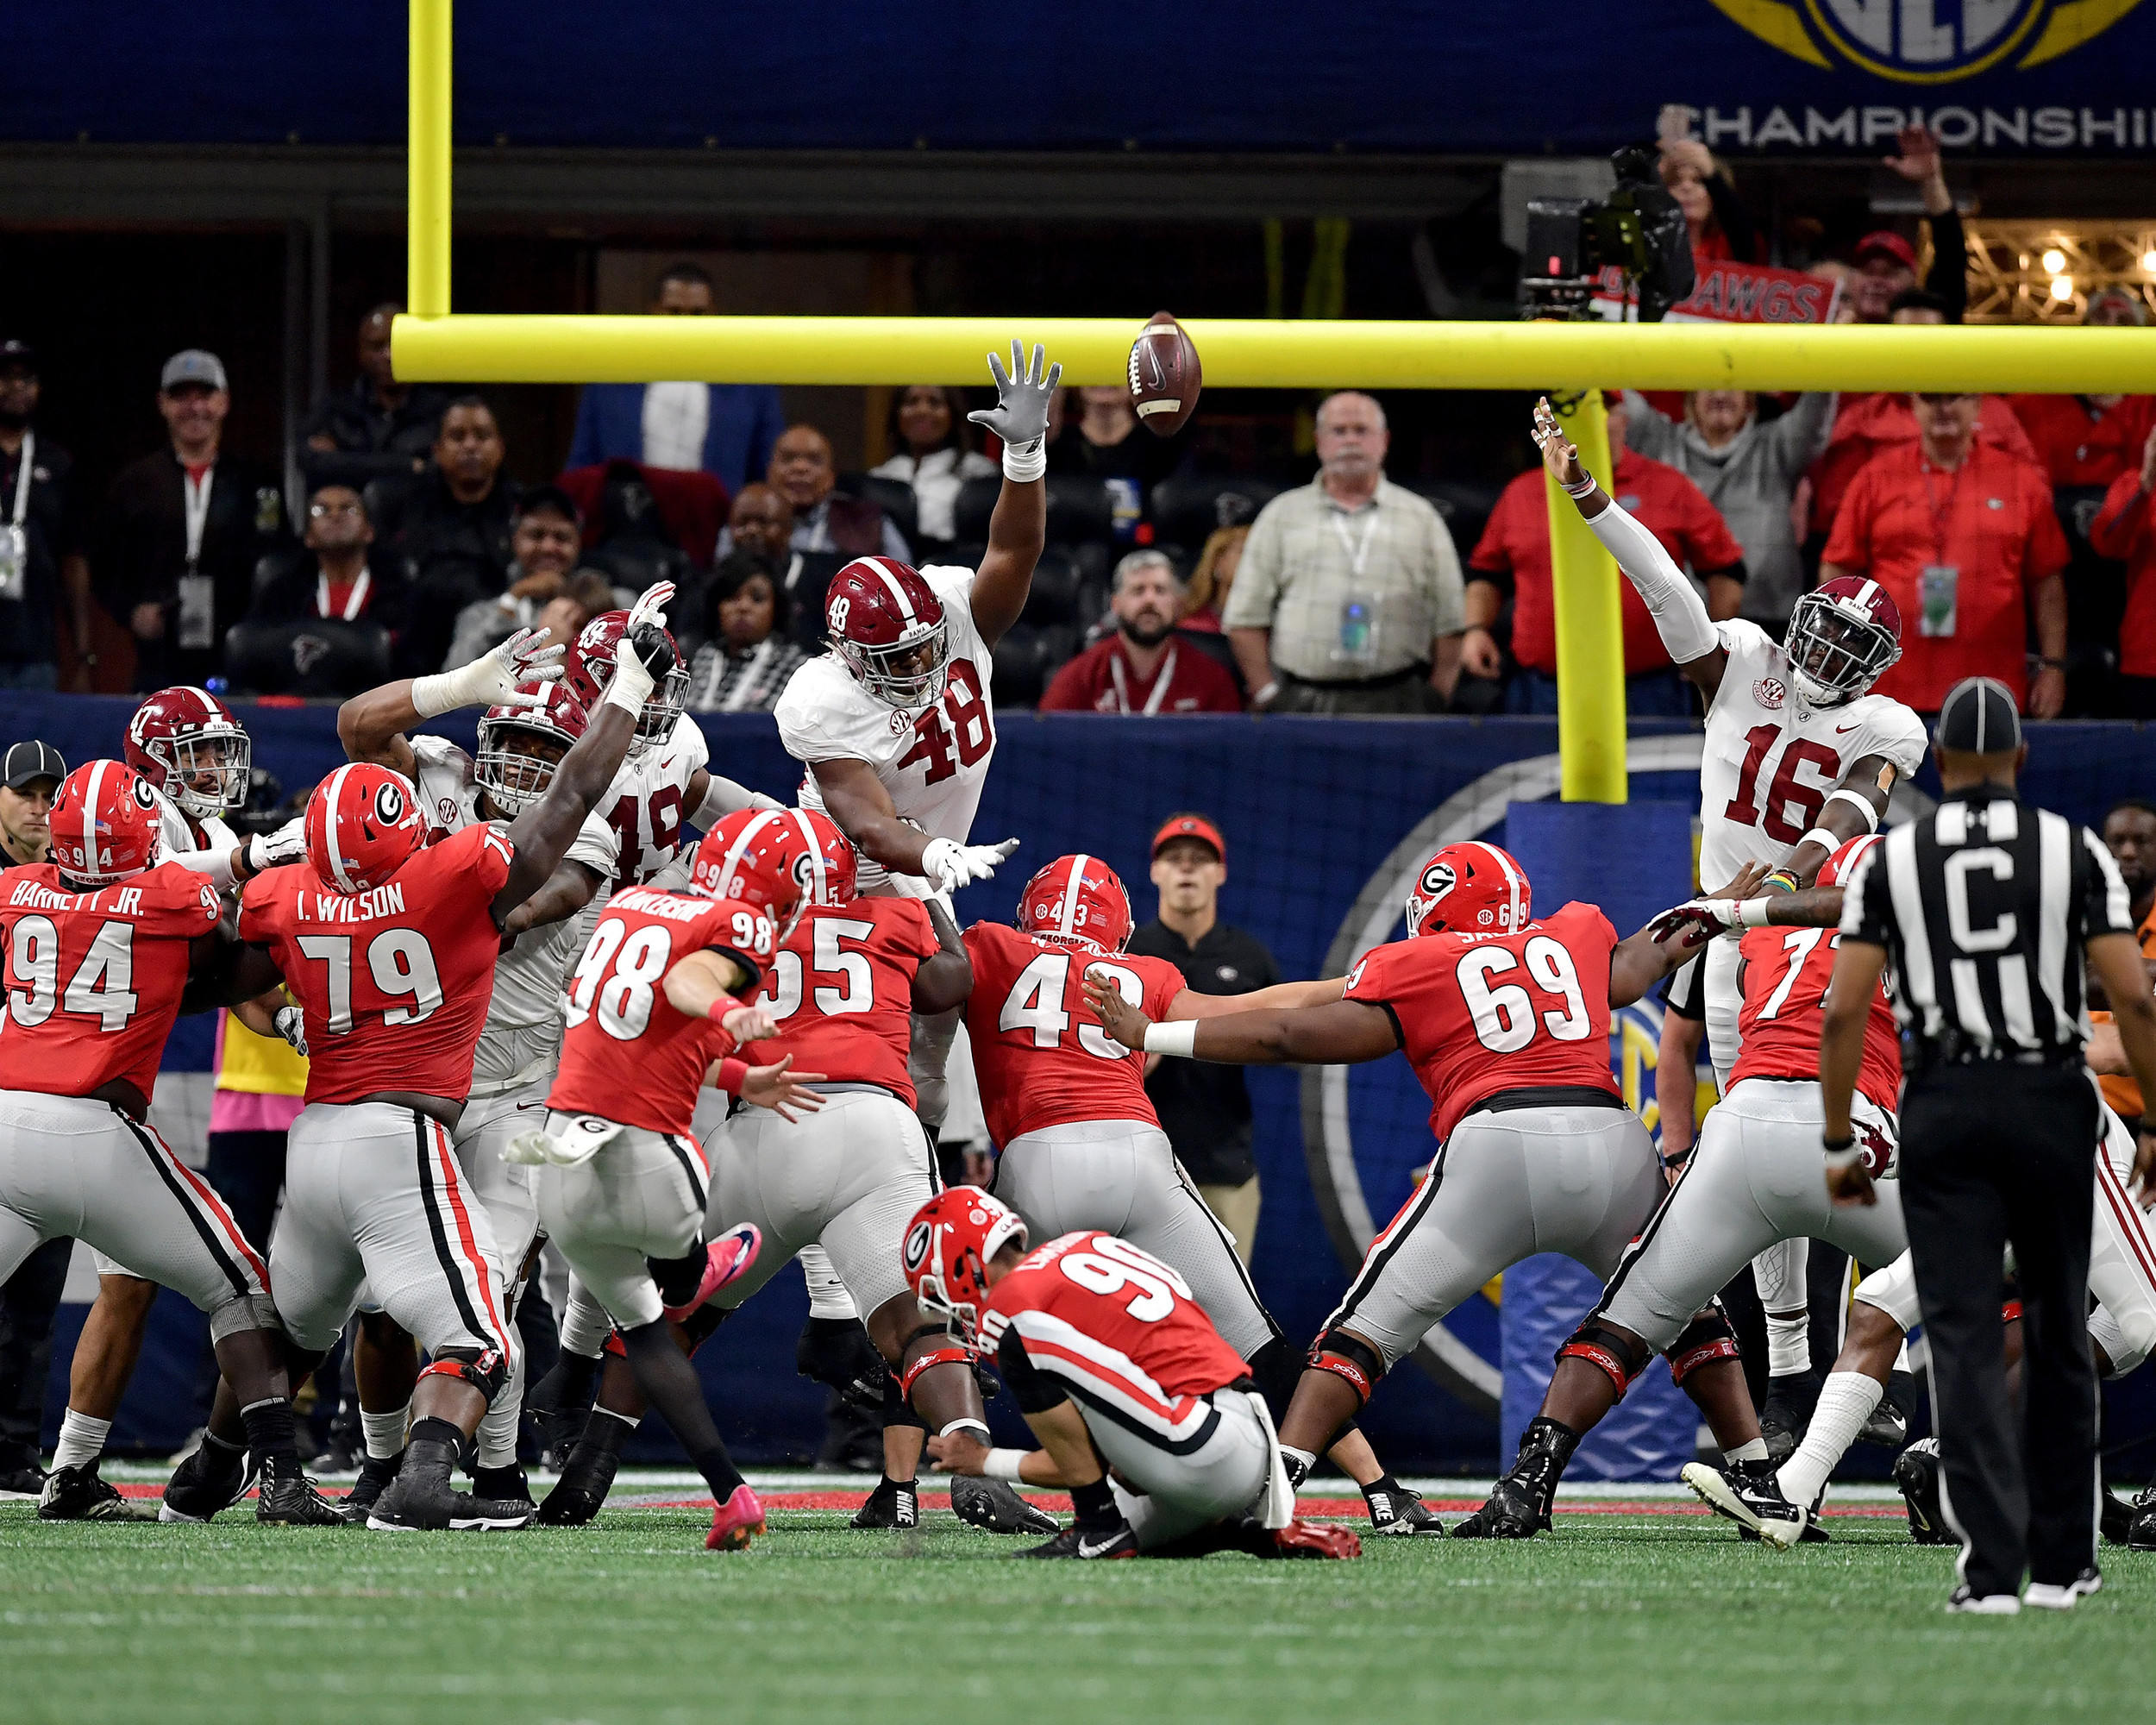 Georgia Bulldogs place kicker Rodrigo Blankenship (98) with the extra point during the first half of the 2018 SEC Championship football game, featuring the Bulldogs and the Alabama Crimson Tide, at Mercedes-Benz Stadium in Atlanta, Ga., on Dec. 1, 2018. Alabama wins 35-28. (Photo by Lee Walls)